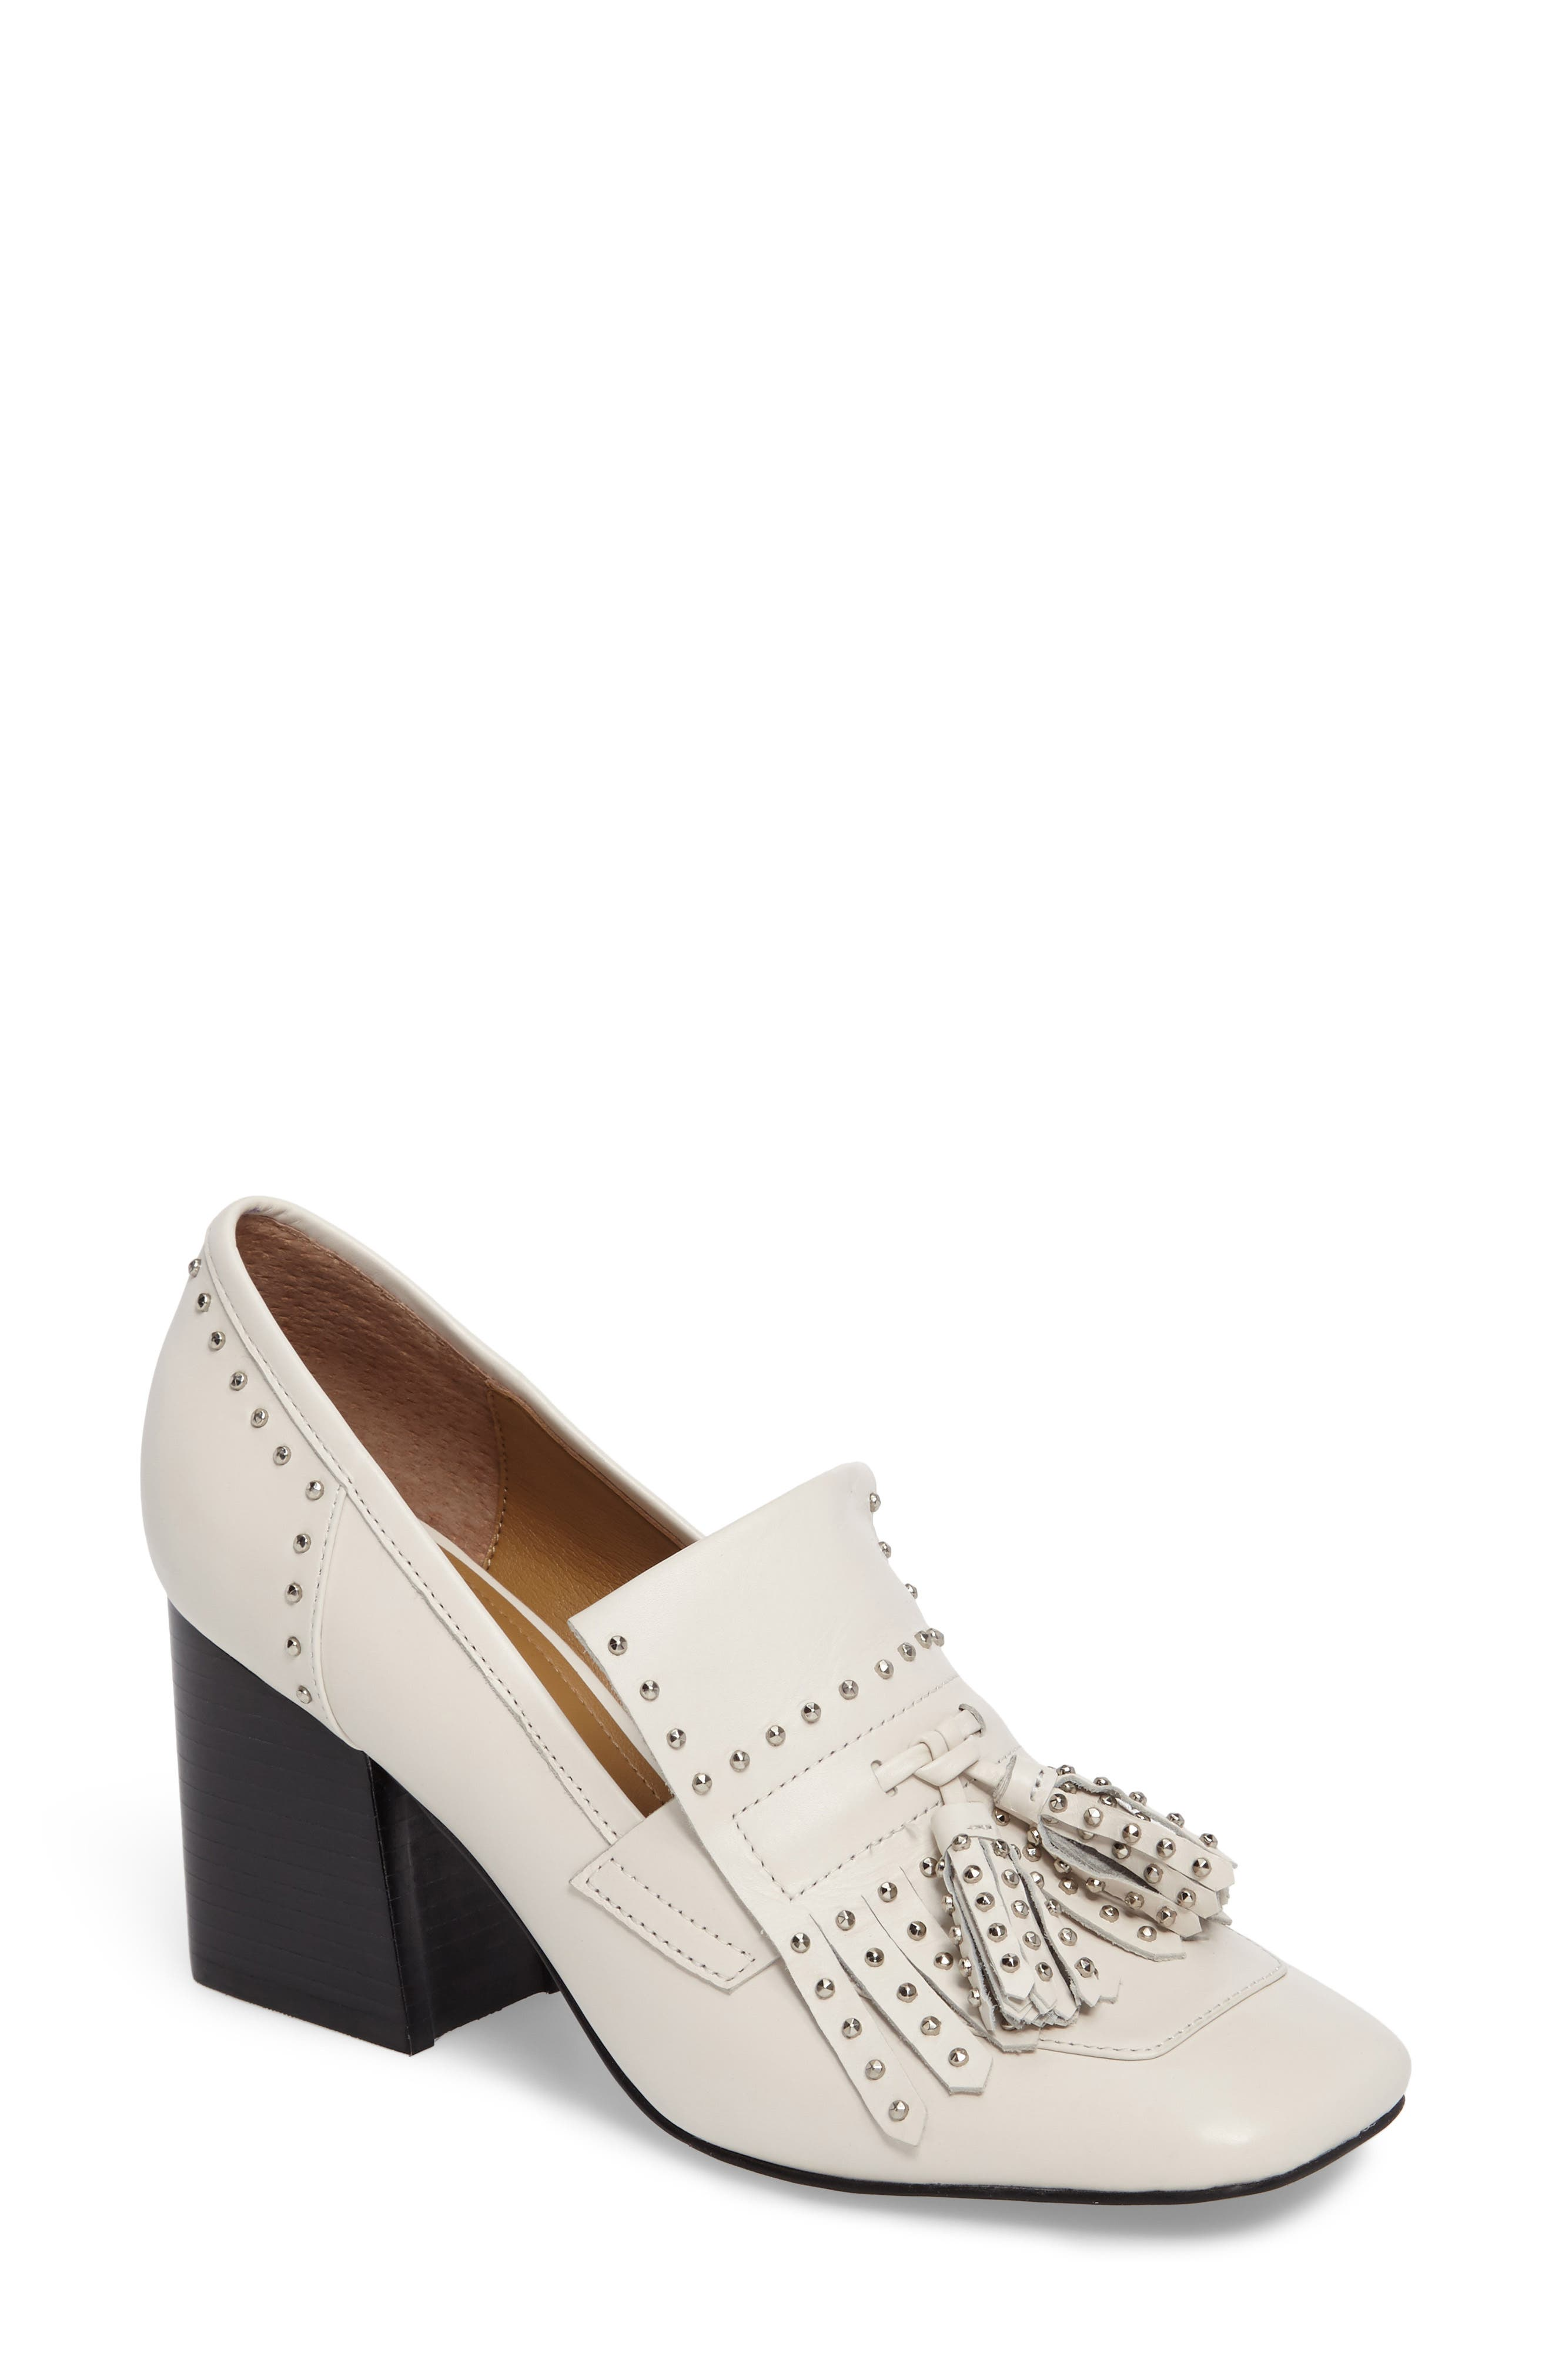 Mellie Fringe Pump,                         Main,                         color, Ivory Leather